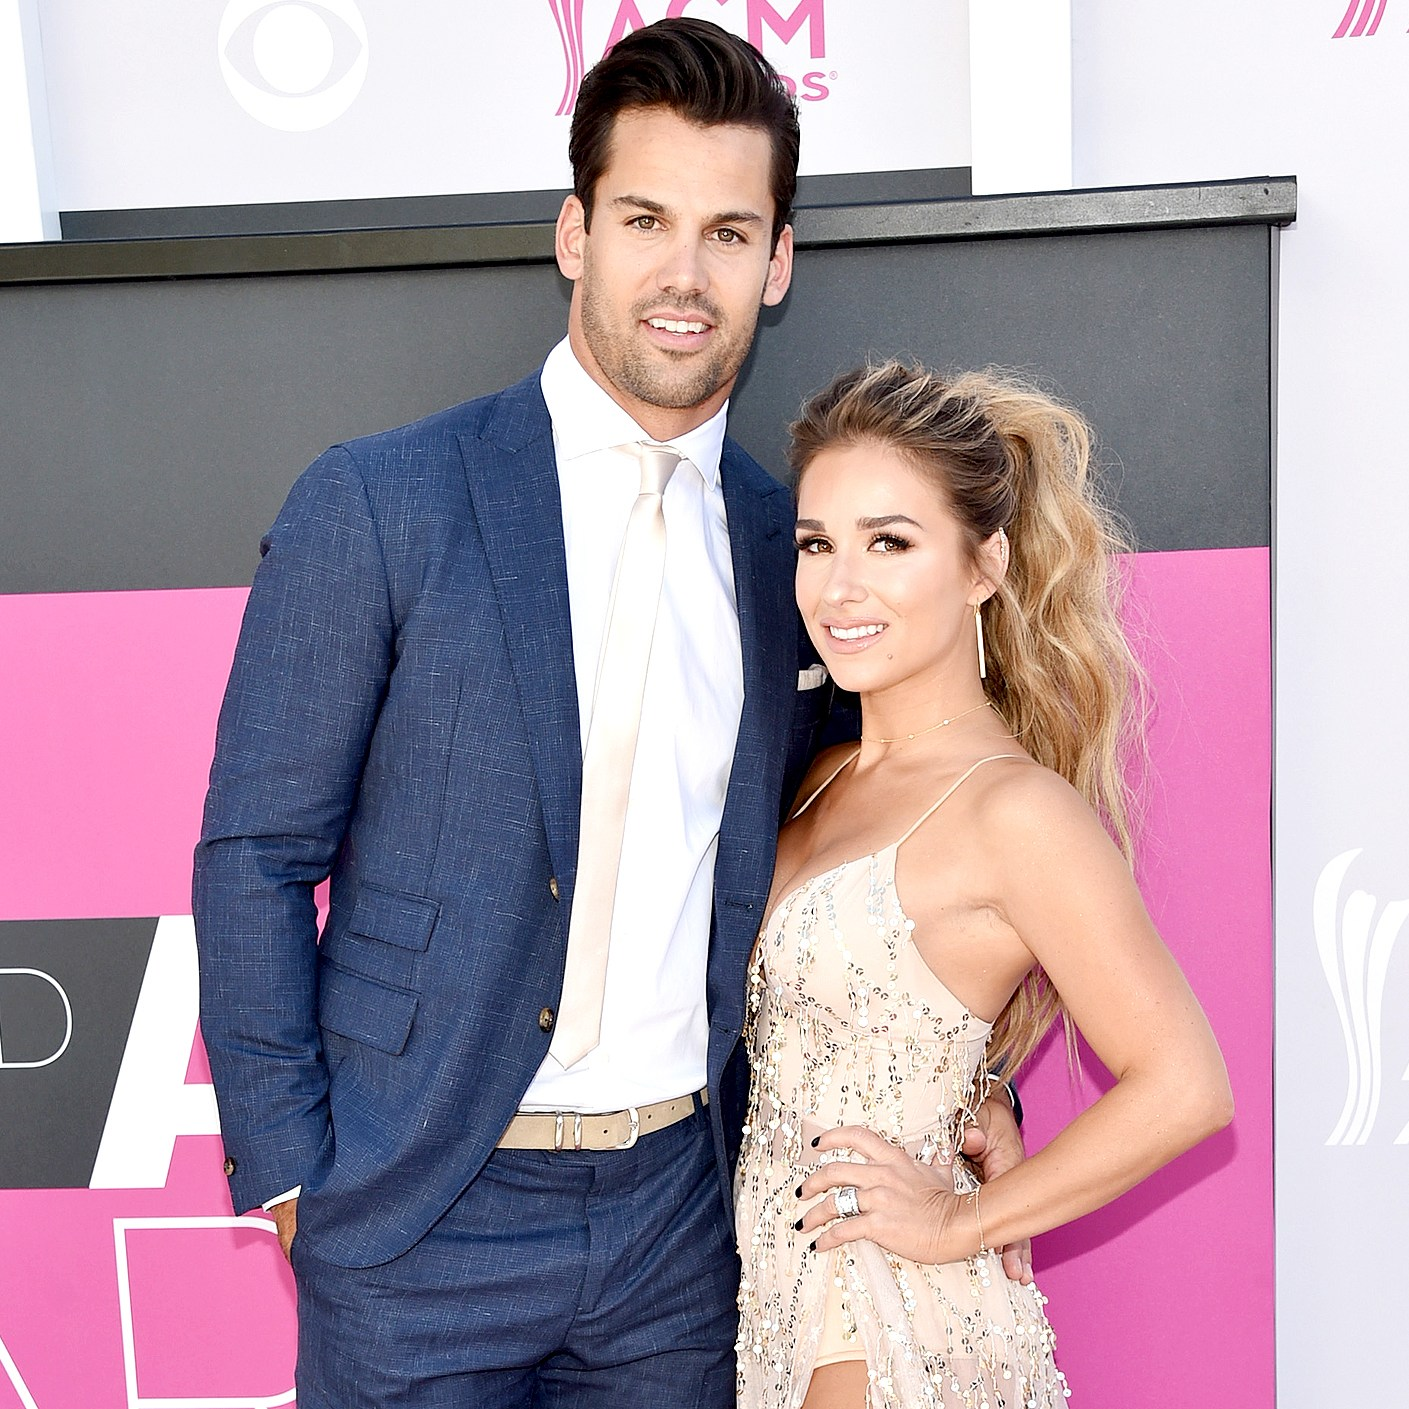 Eric Decker and Jessie James Decker attend the 52nd Academy Of Country Music Awards at Toshiba Plaza on April 2, 2017 in Las Vegas, Nevada.